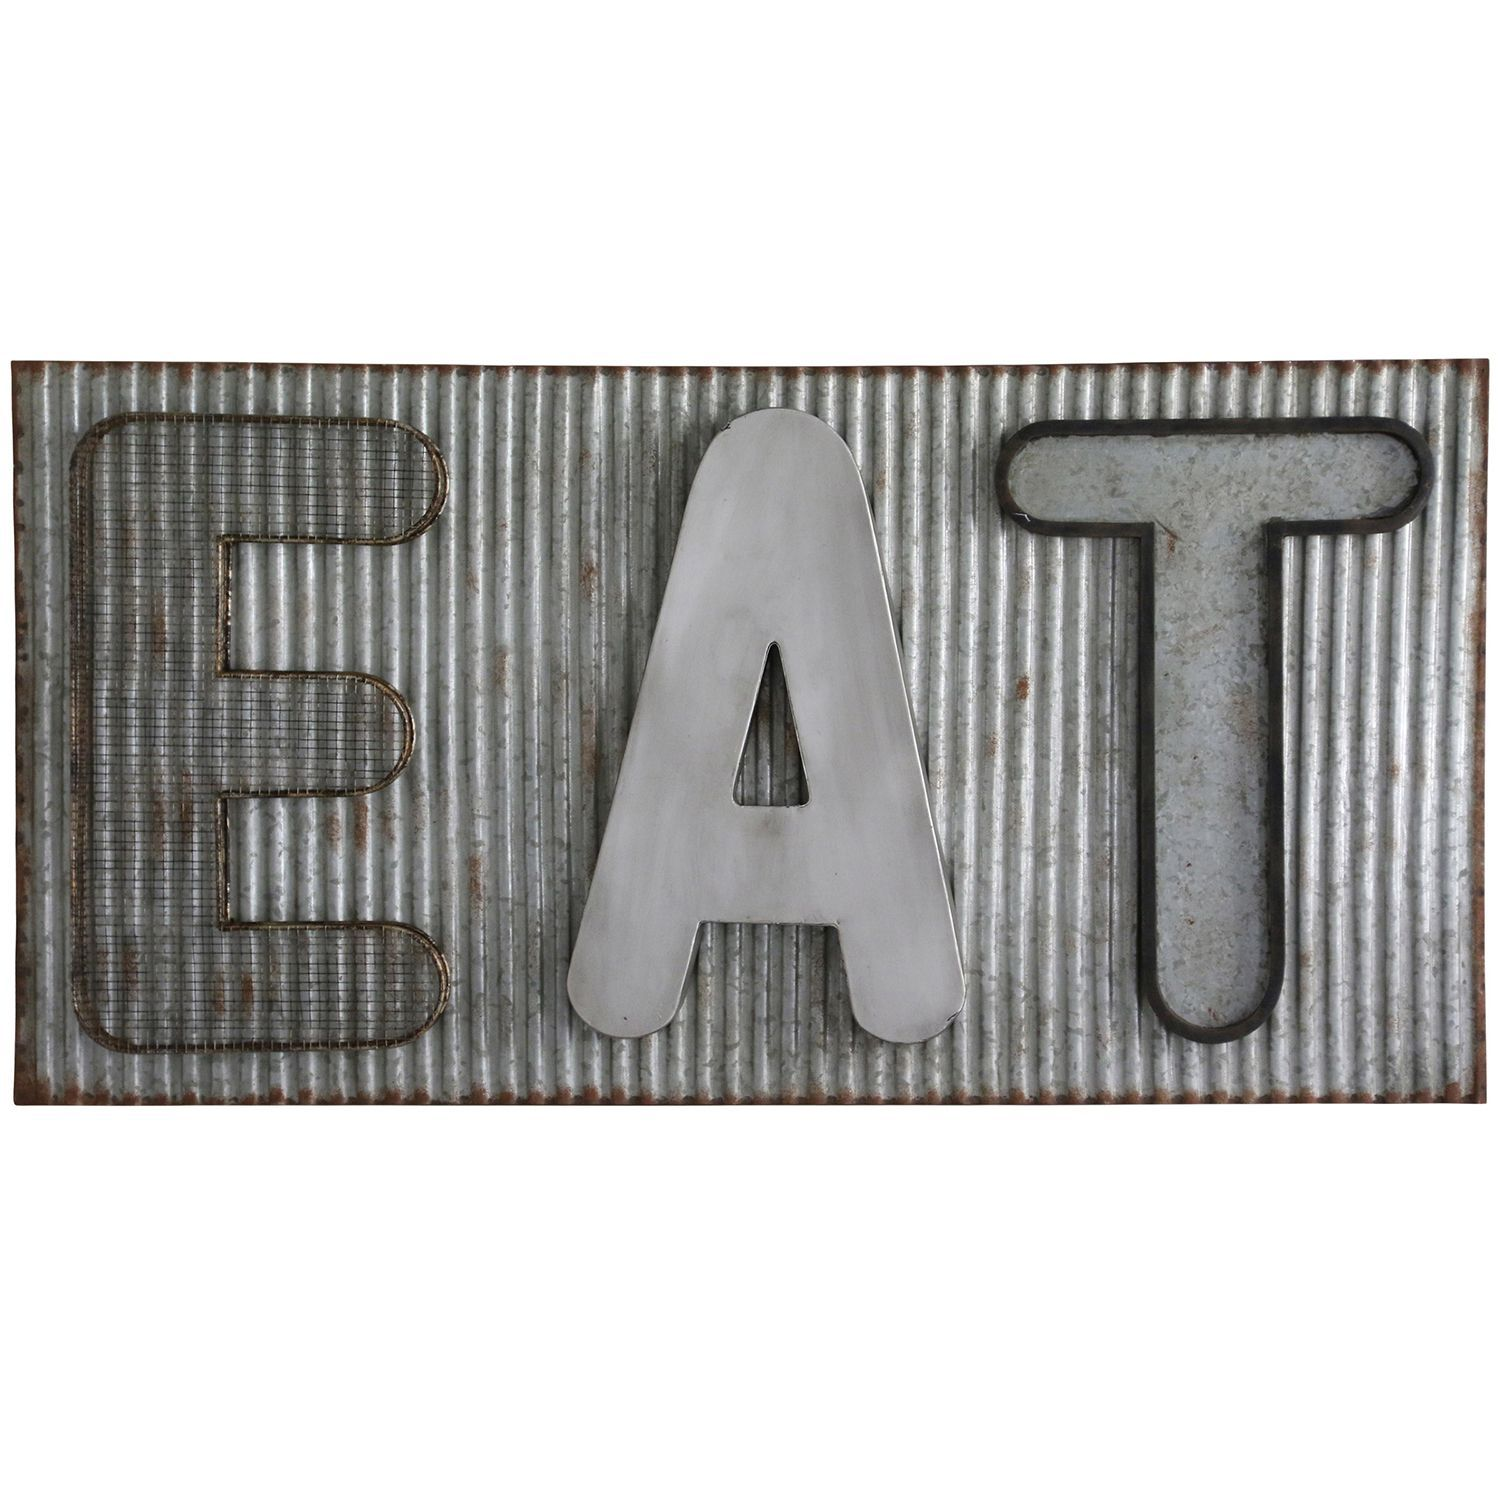 Eat metal wall decor metal walls metals and products